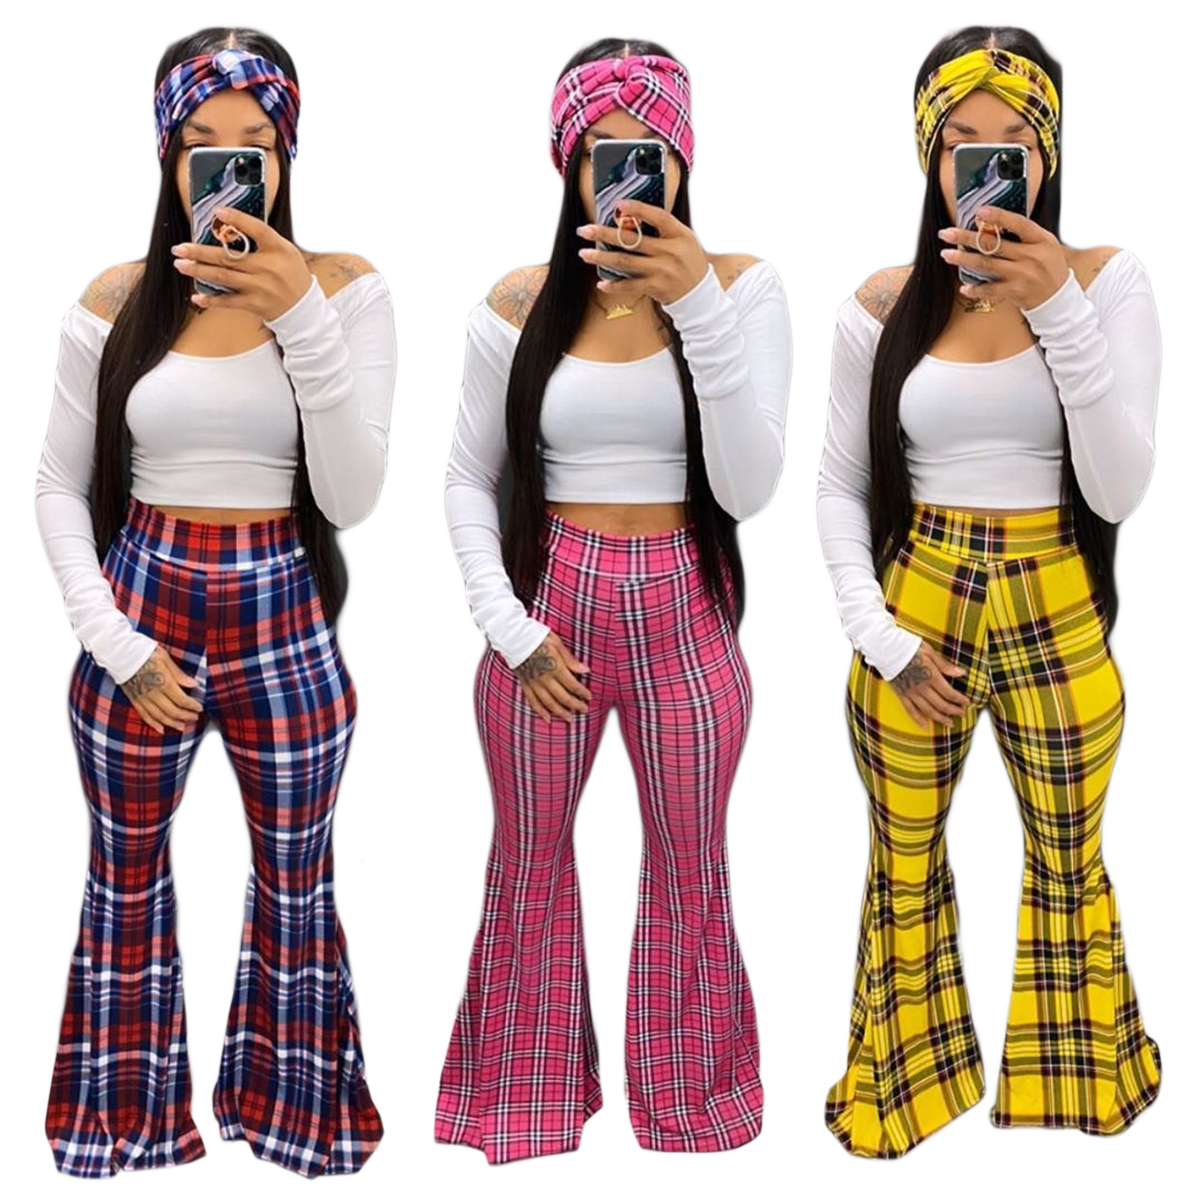 FM-YY5167 2020 drop ship white blouse and plaid wide leg pants women three piece <strong>set</strong> with headband